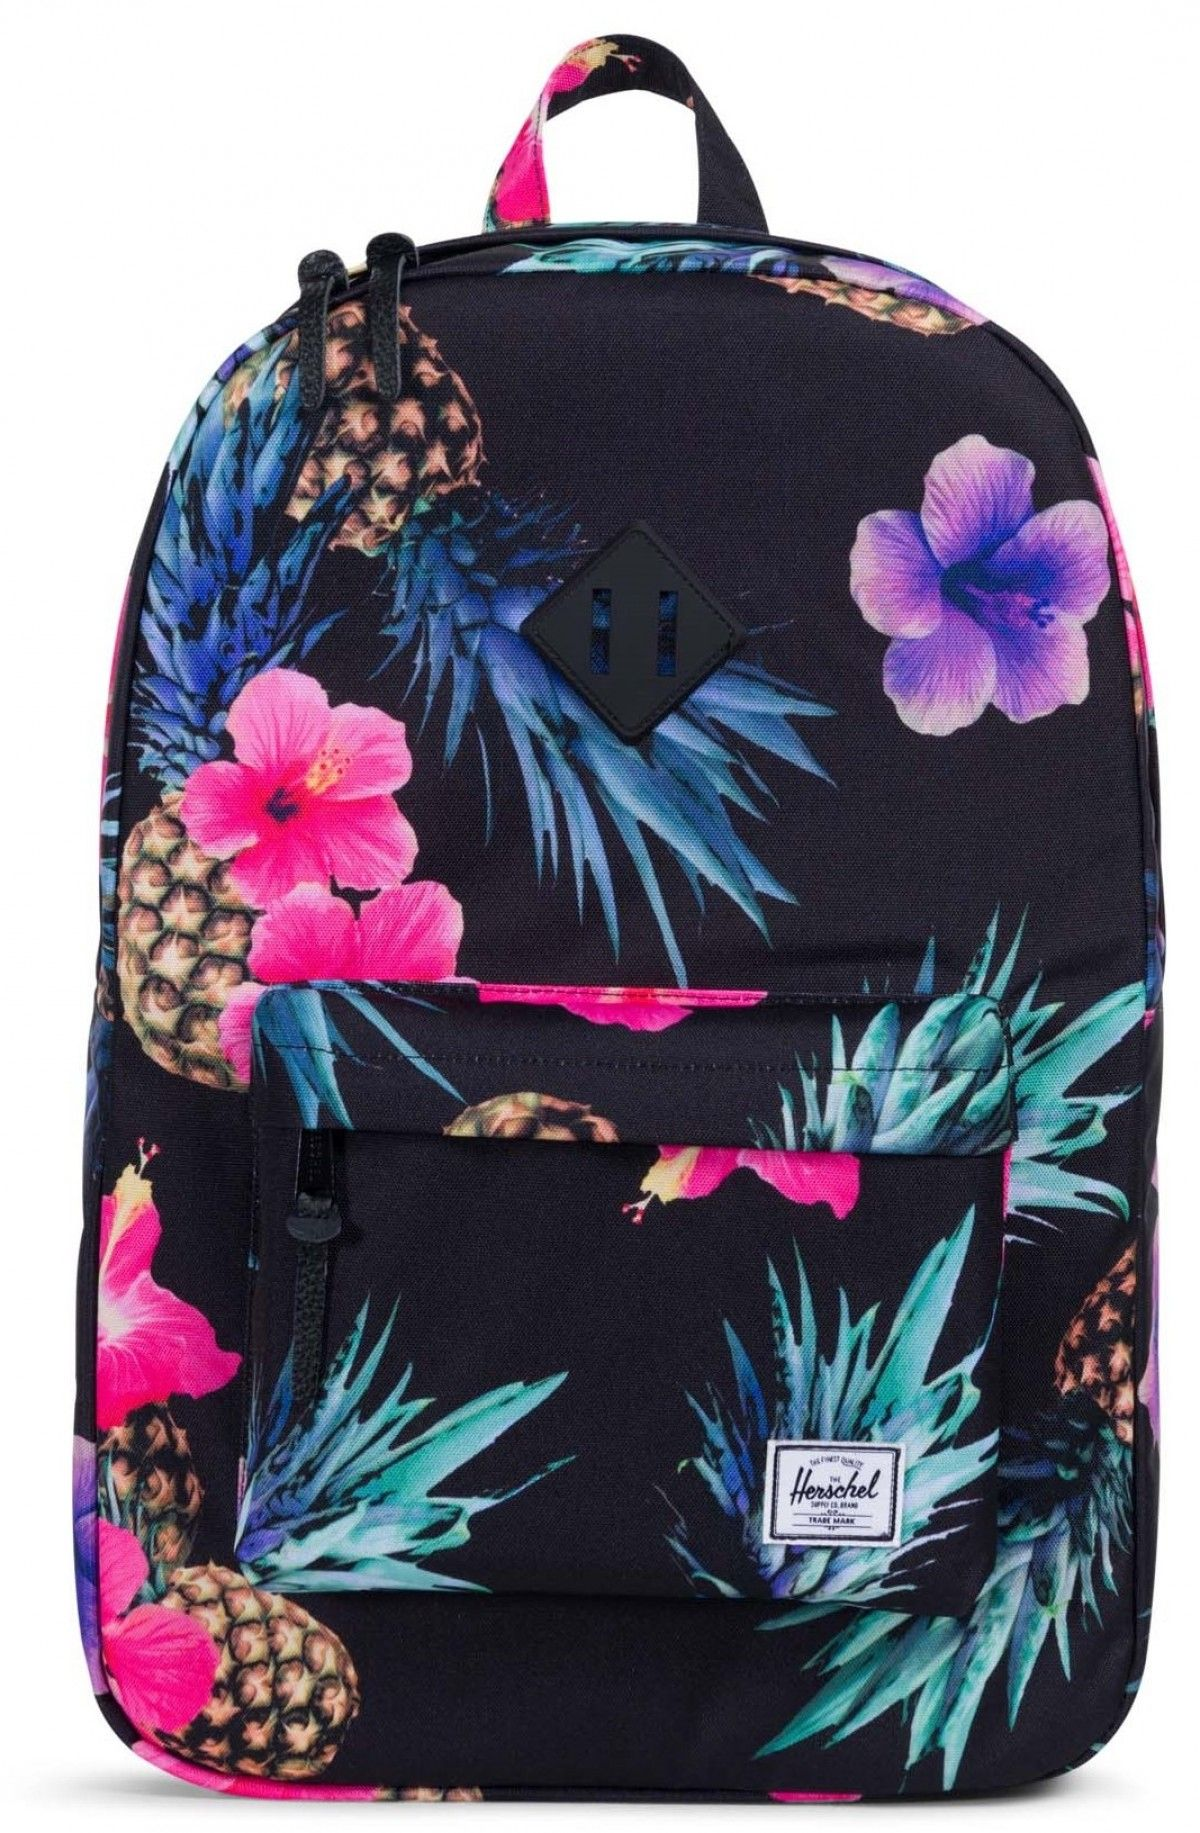 1c7a022f9f Herschel Heritage Backpack 600D Poly Black Pineapple Black ...